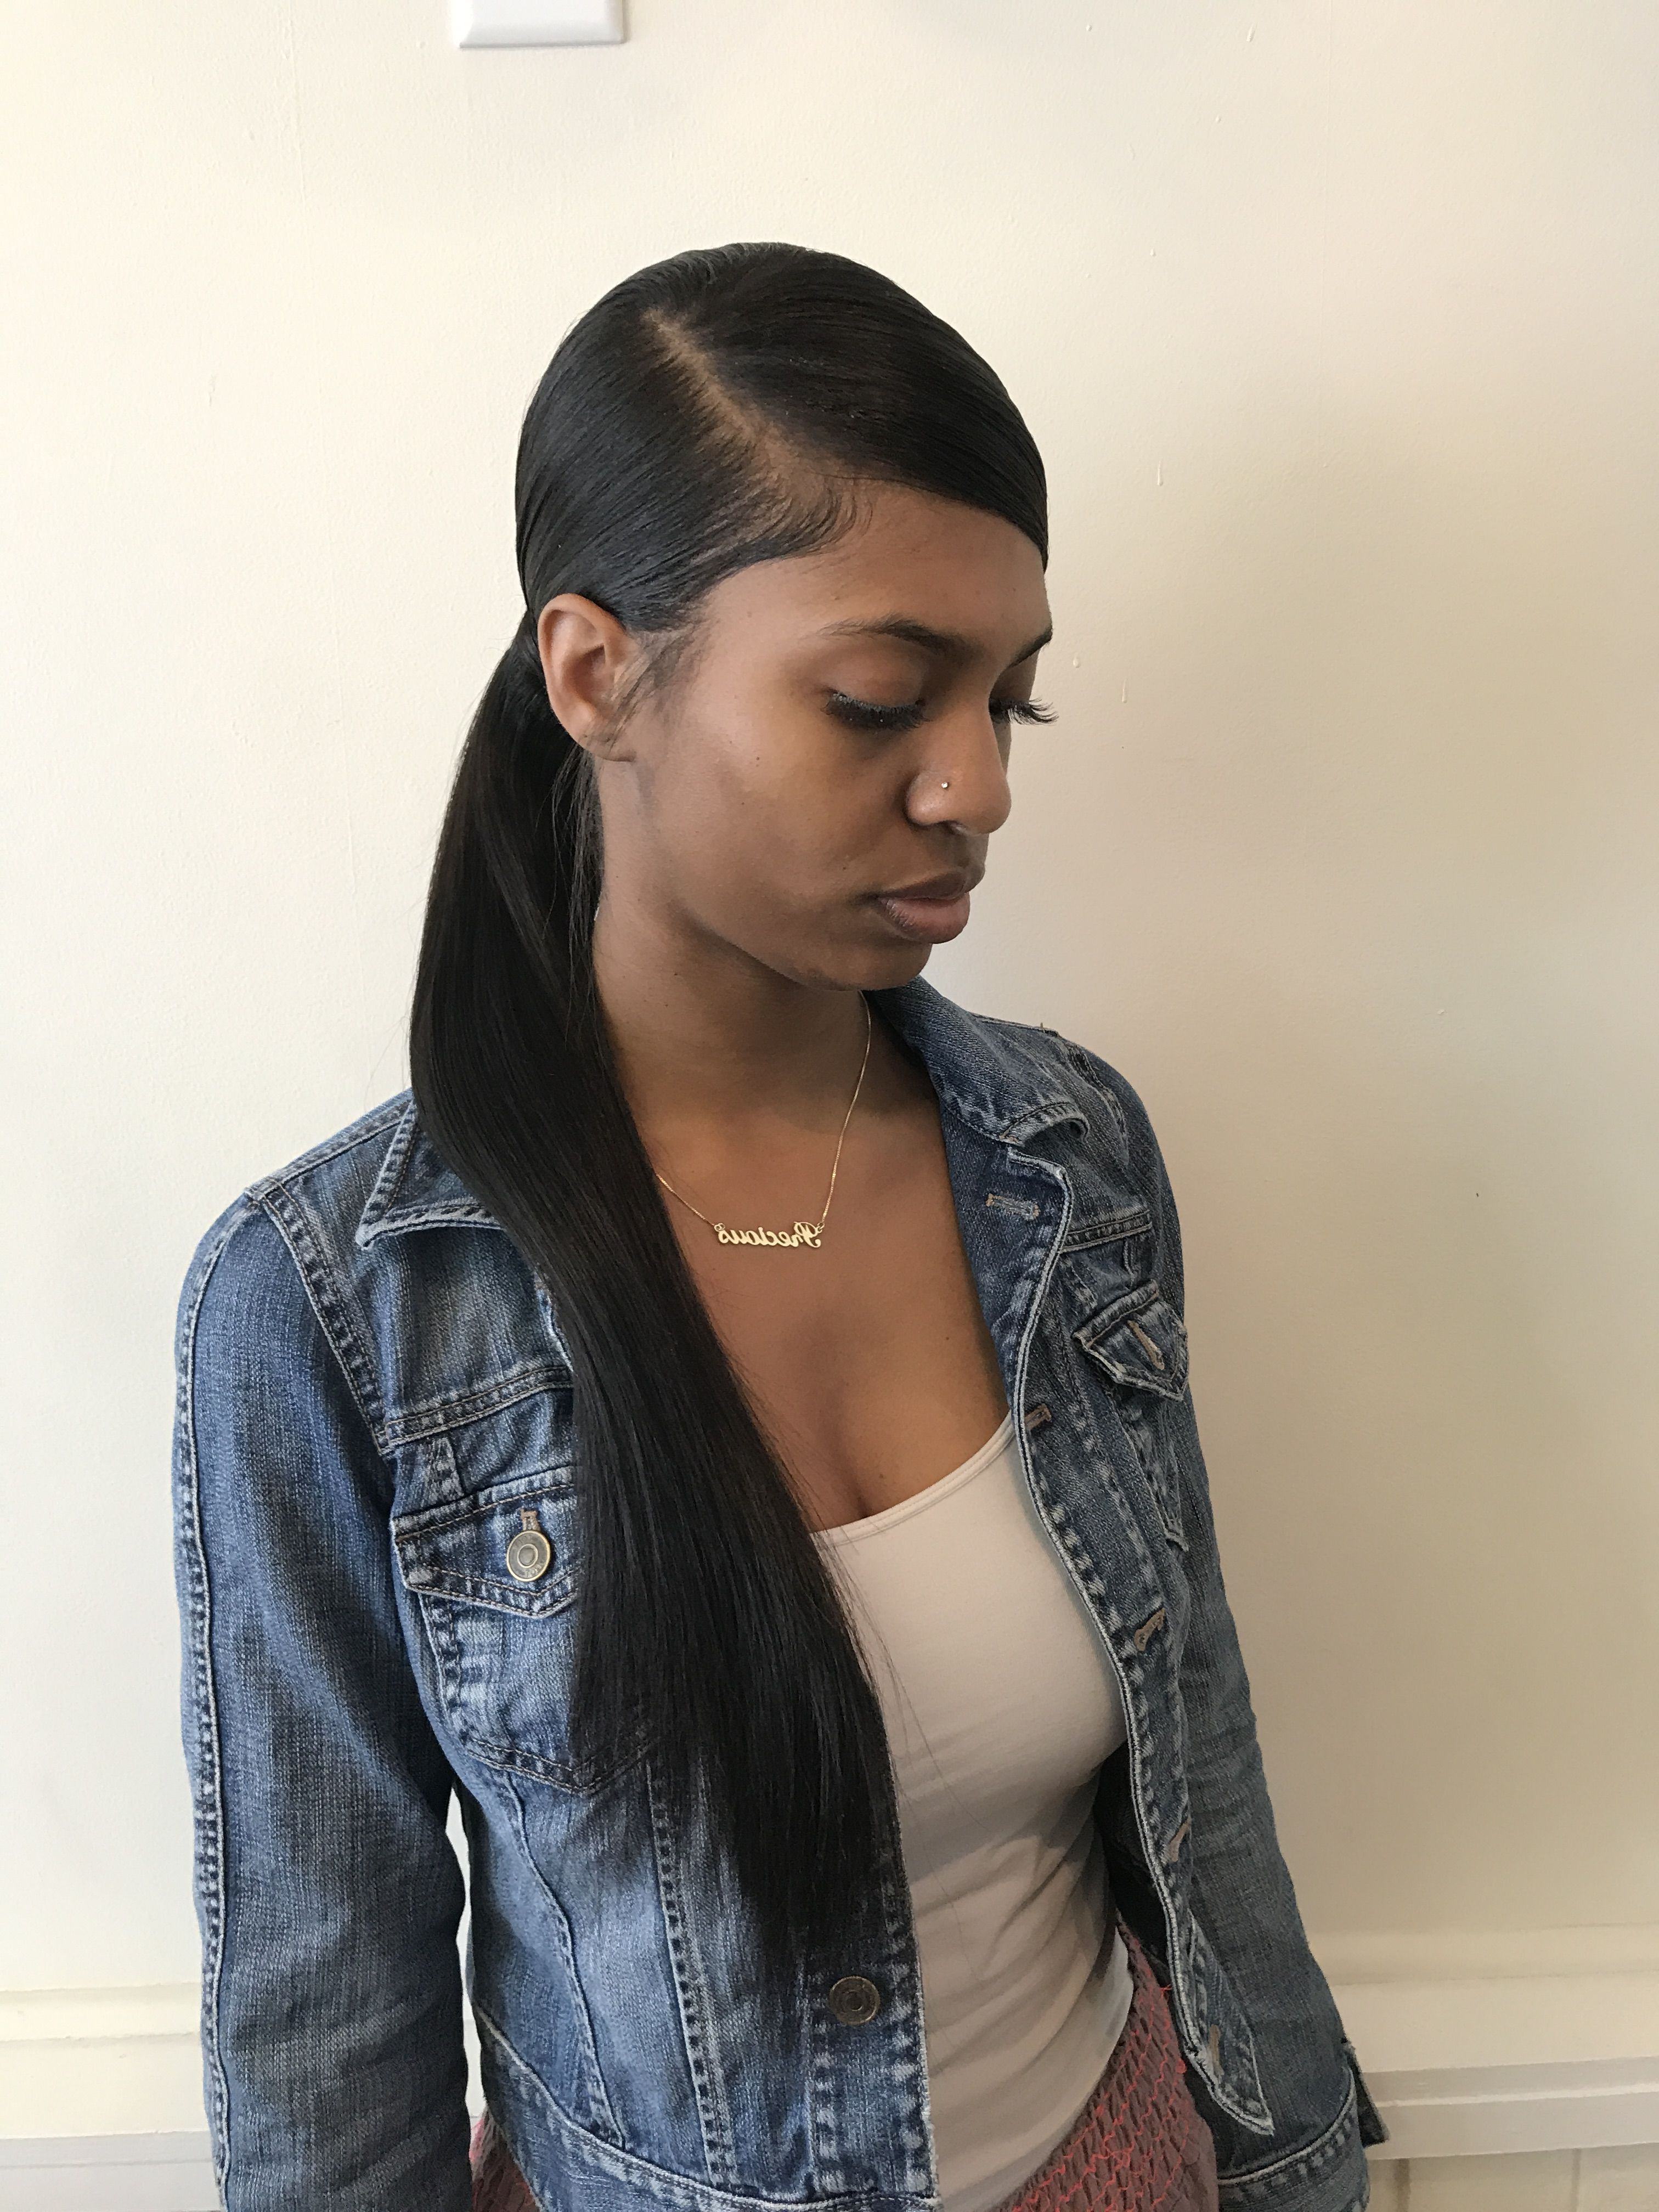 Black Girl With Regard To Most Recent Loose Low Ponytail Hairstyles With Casual Side Bang (View 9 of 20)